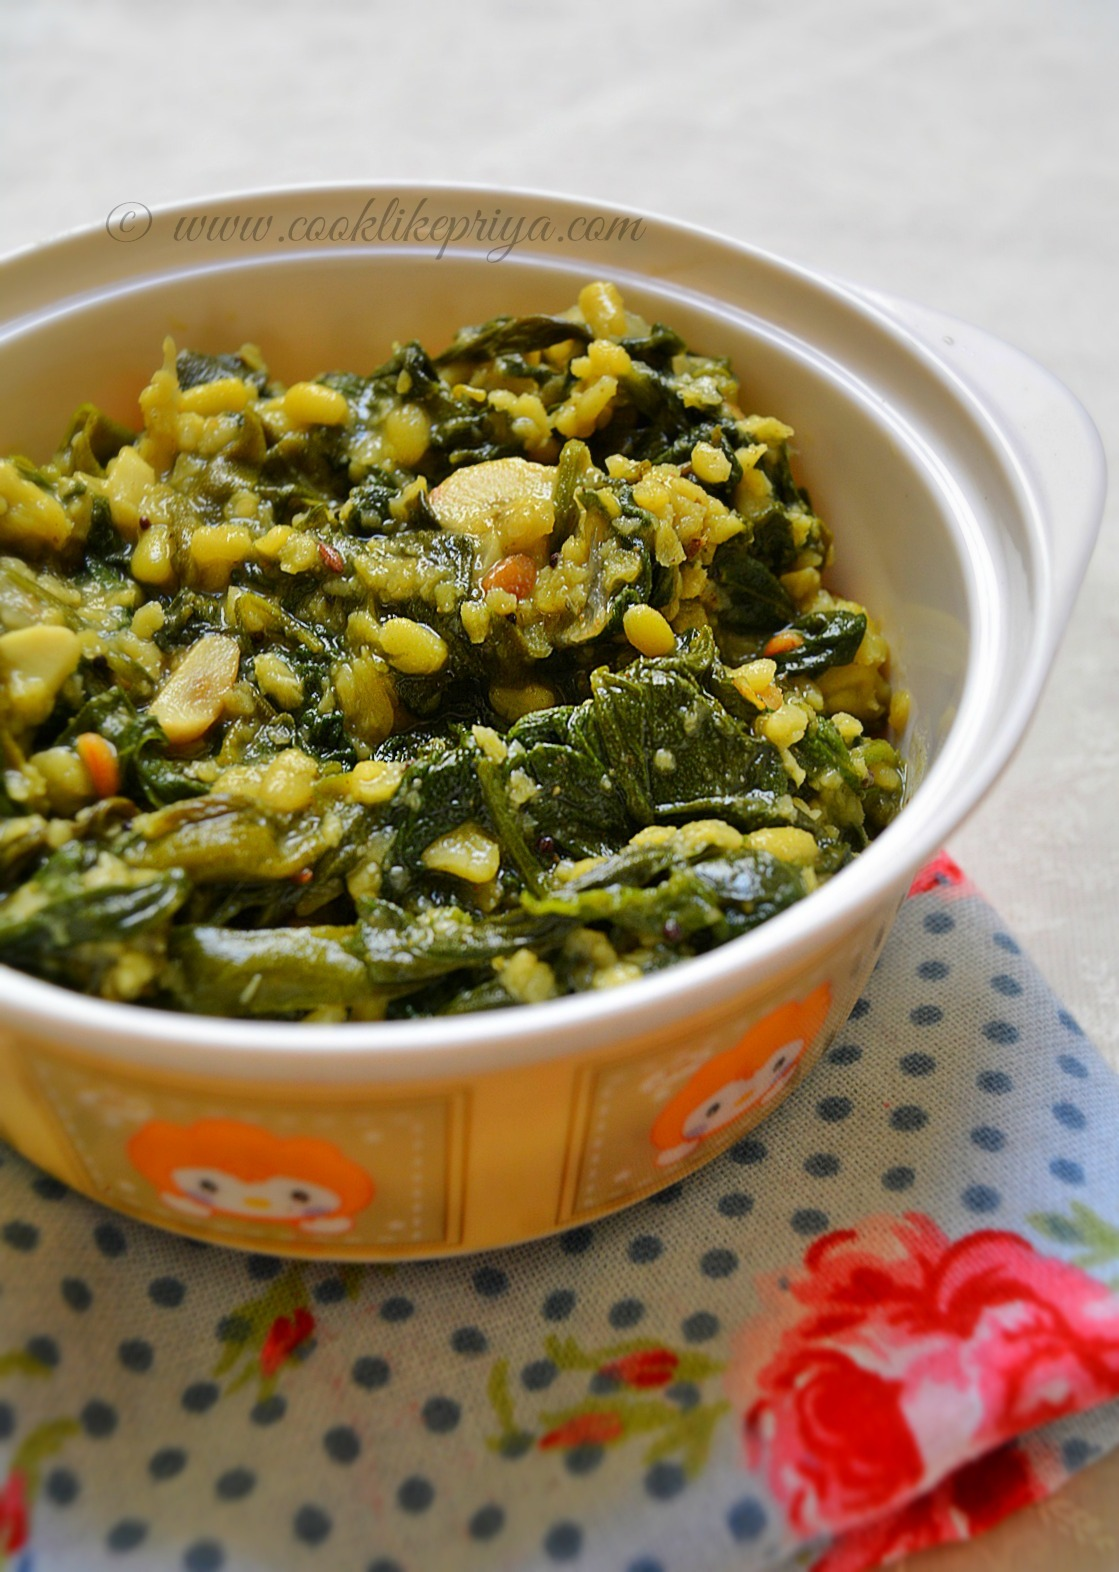 Paruppu Keerai Poriyal | Spinach Greens Stir Fry with home grown greens